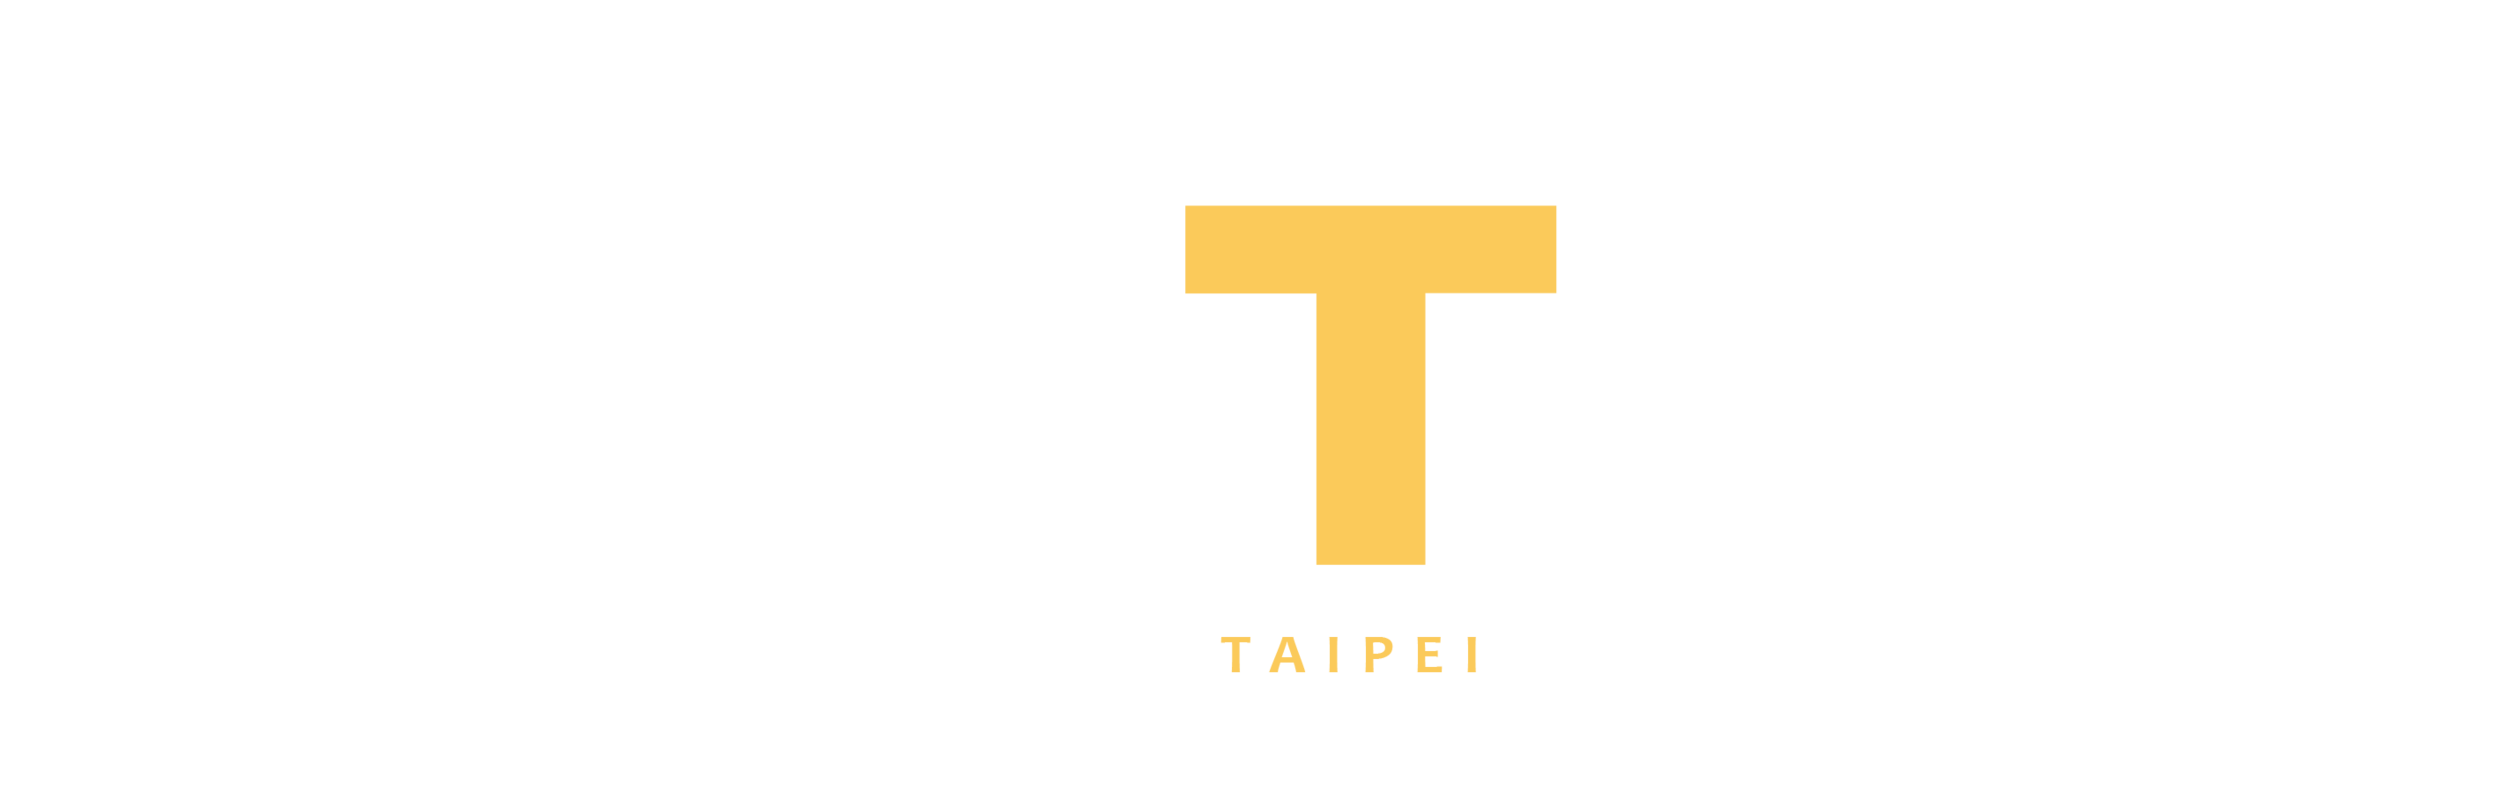 台北國際合唱大賽 Taipei International Choral Competition